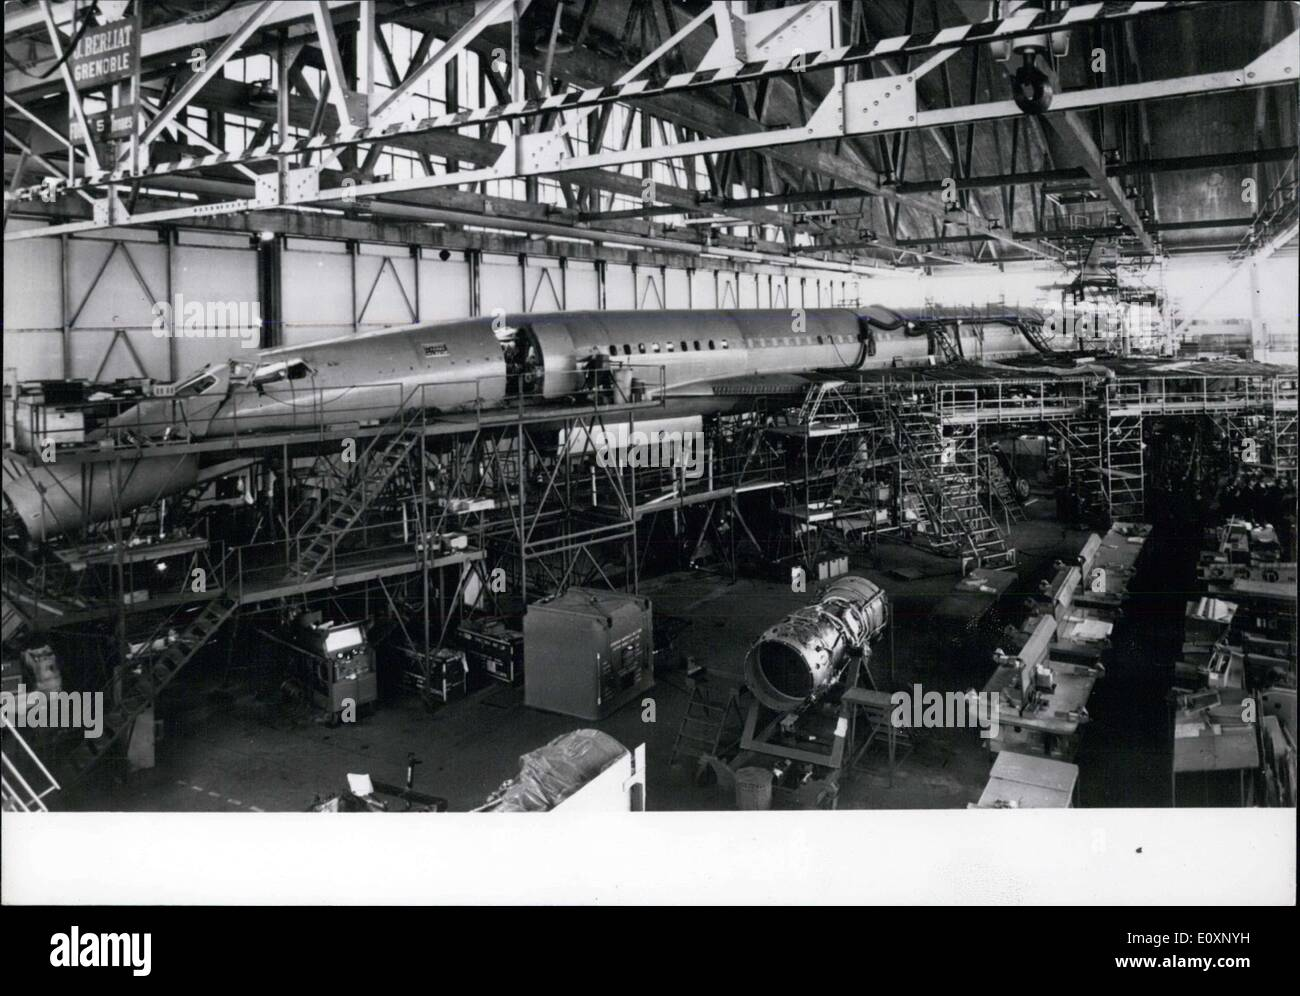 Jun. 30, 1967 - Concord Jet Under Construction in Toulouse - Stock Image